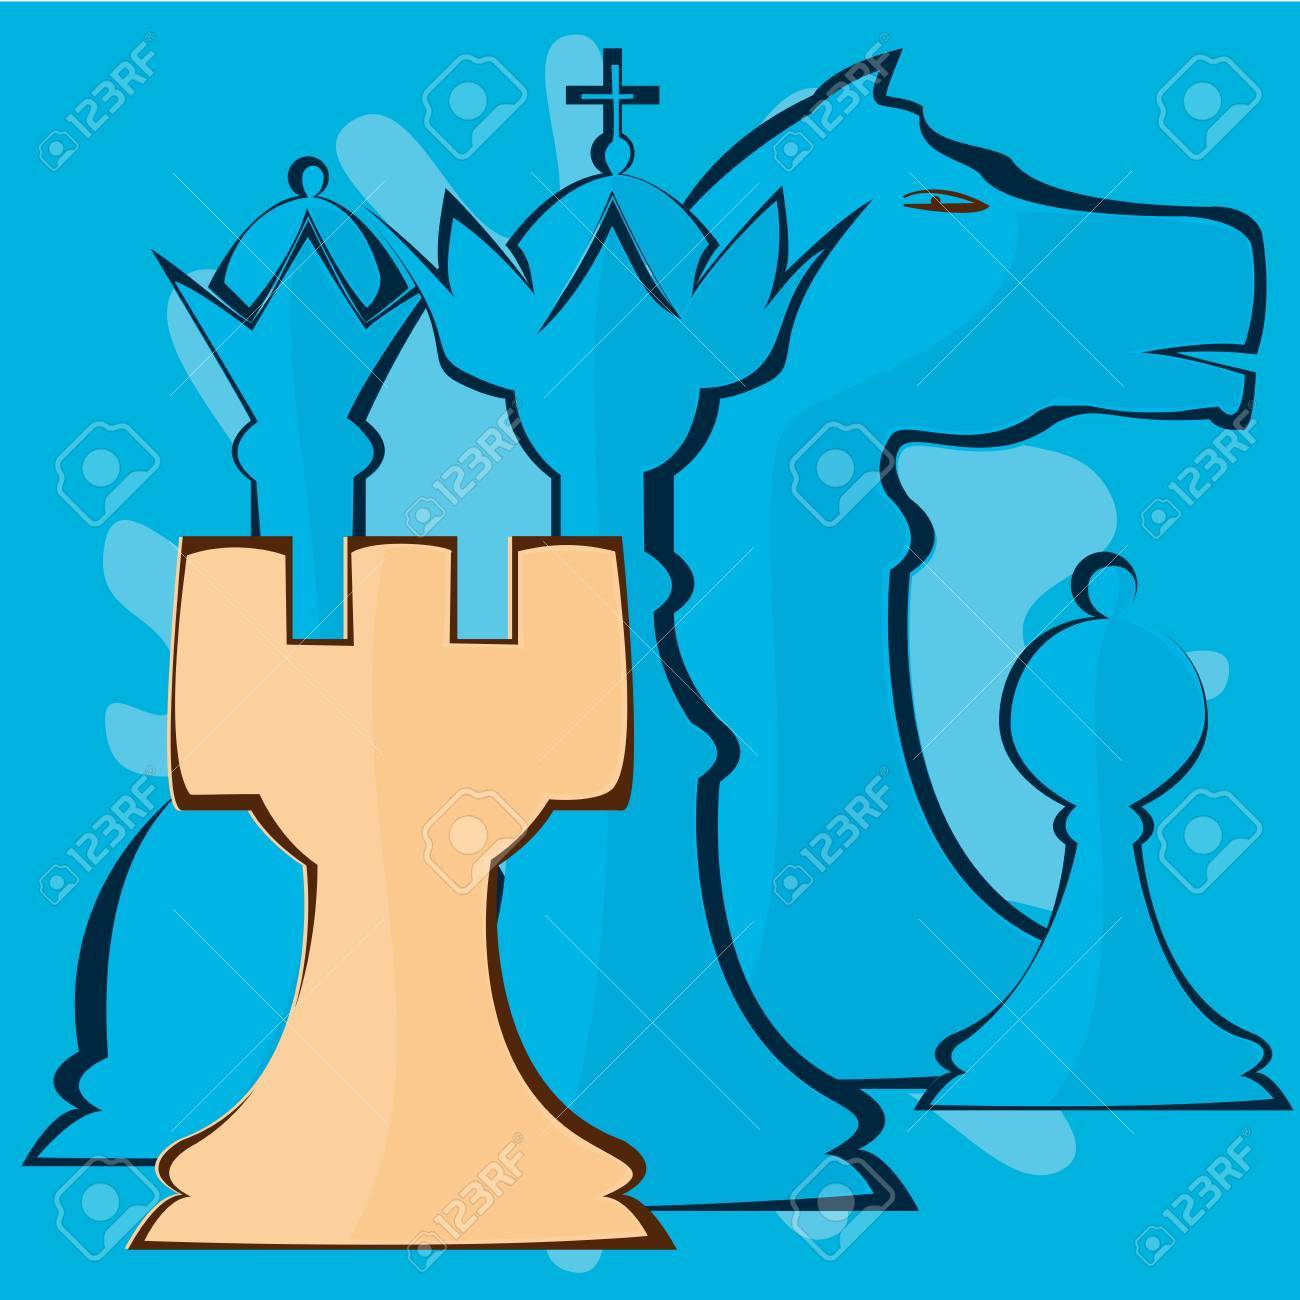 Illustration image of chess pieces Stock Vector - 12821635